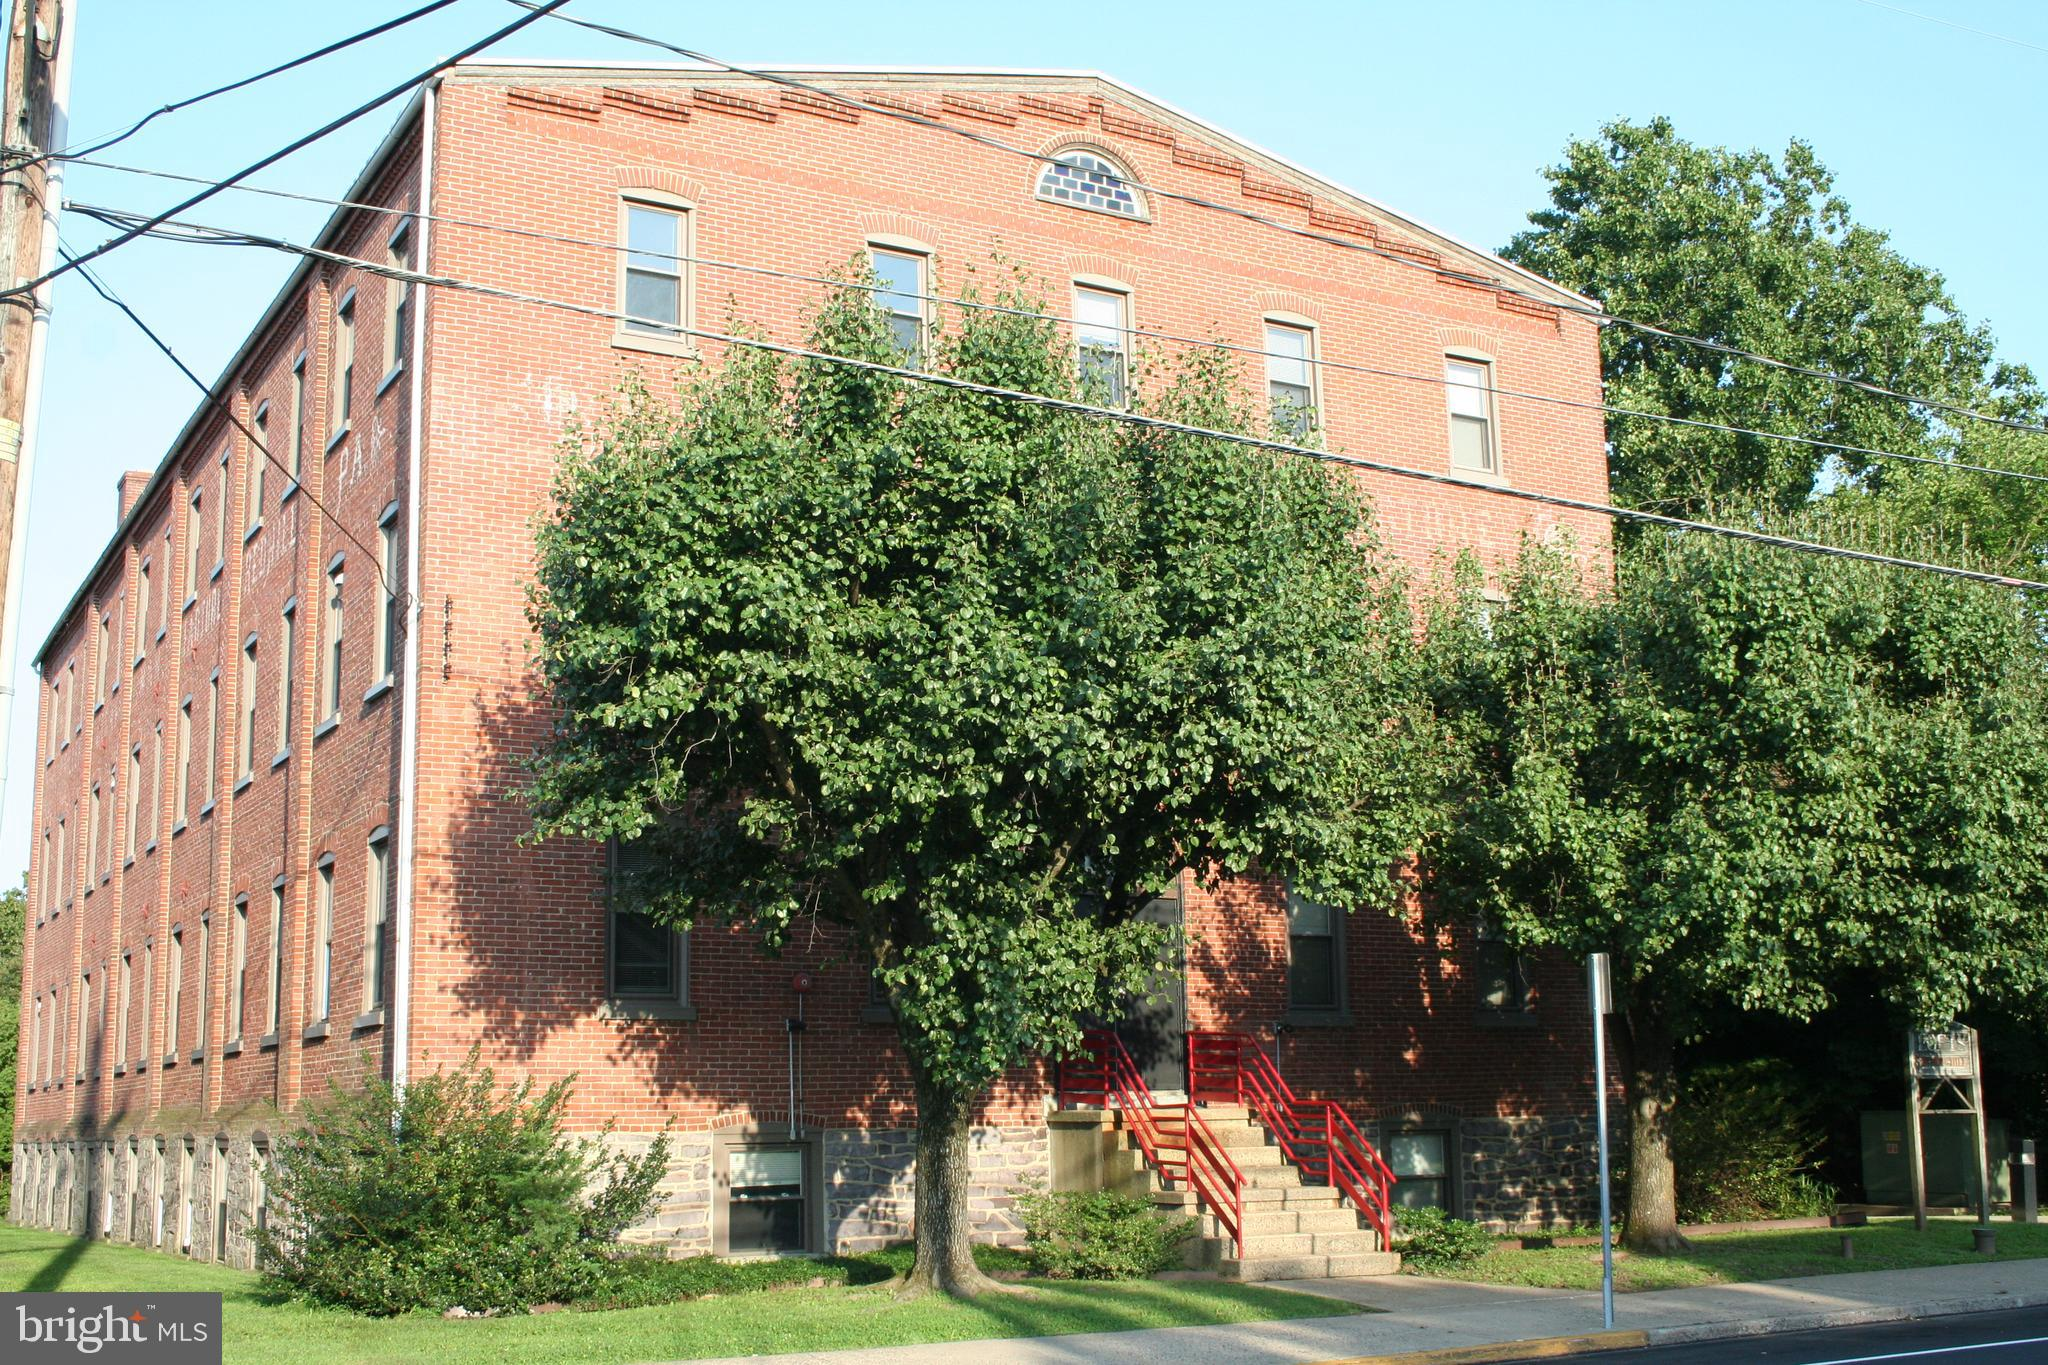 350 MAIN STREET 207, RED HILL, PA 18076